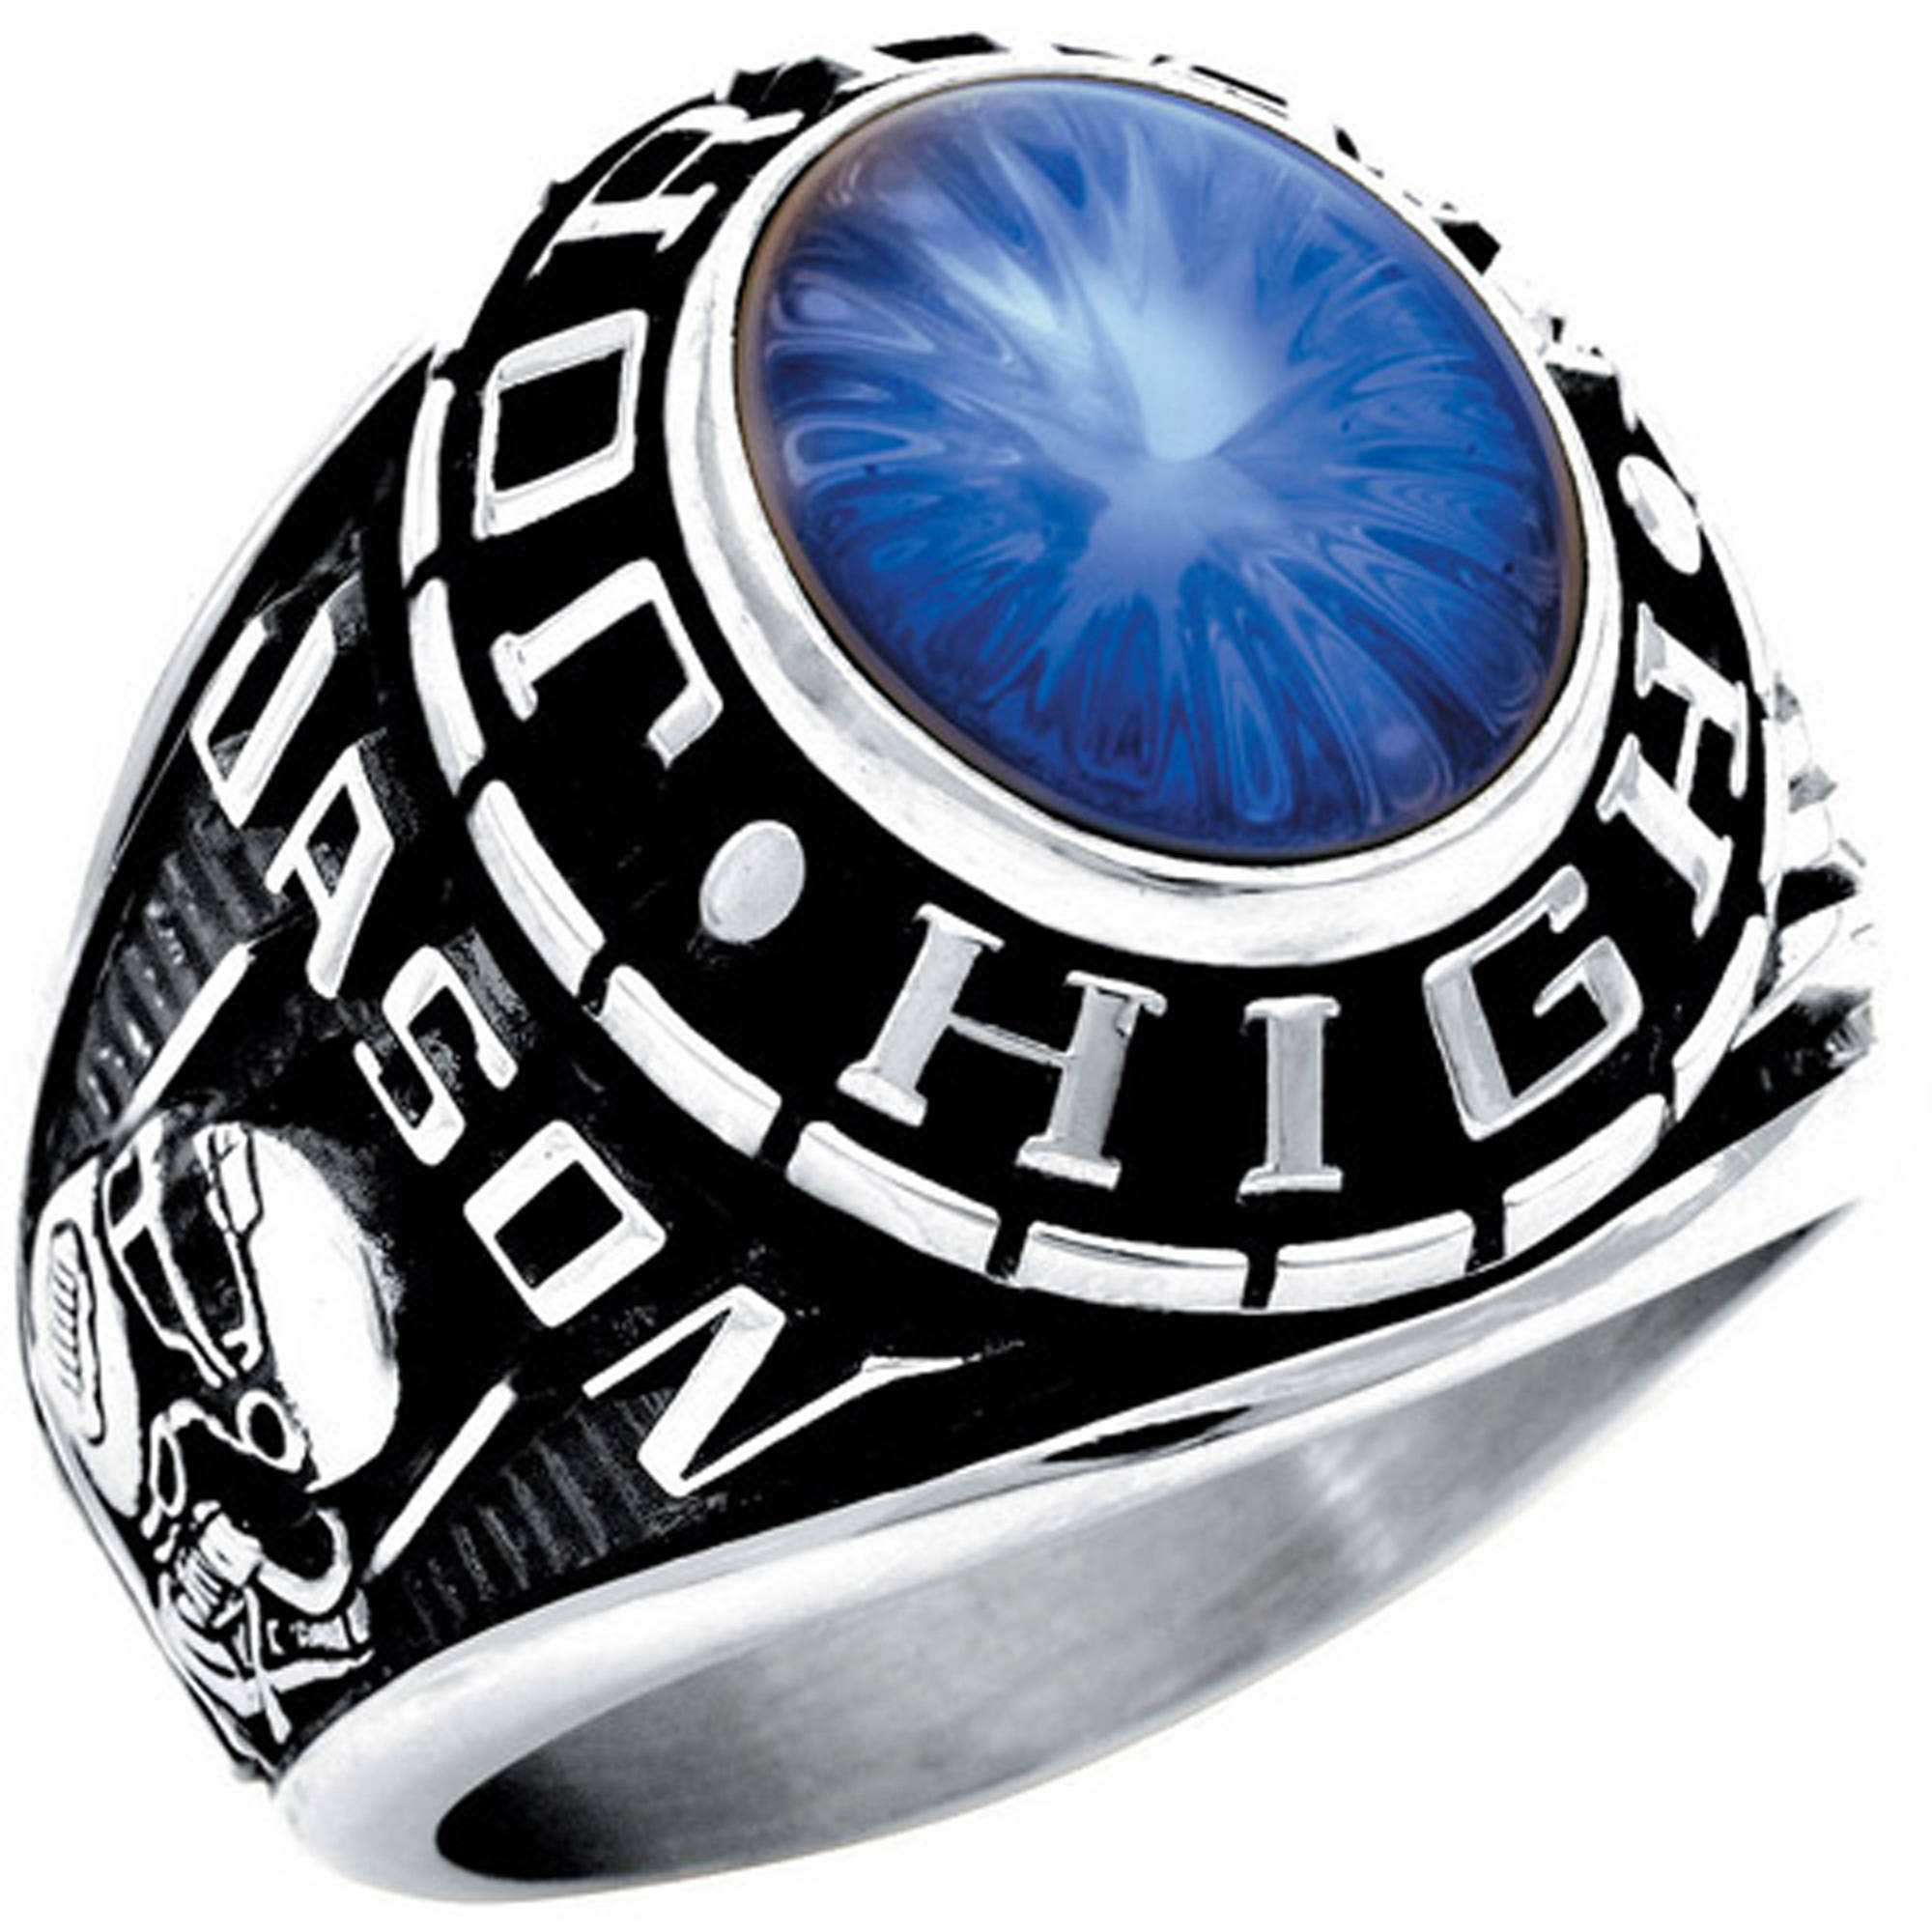 college ring file wikimedia commons lbcc national wiki rings championship